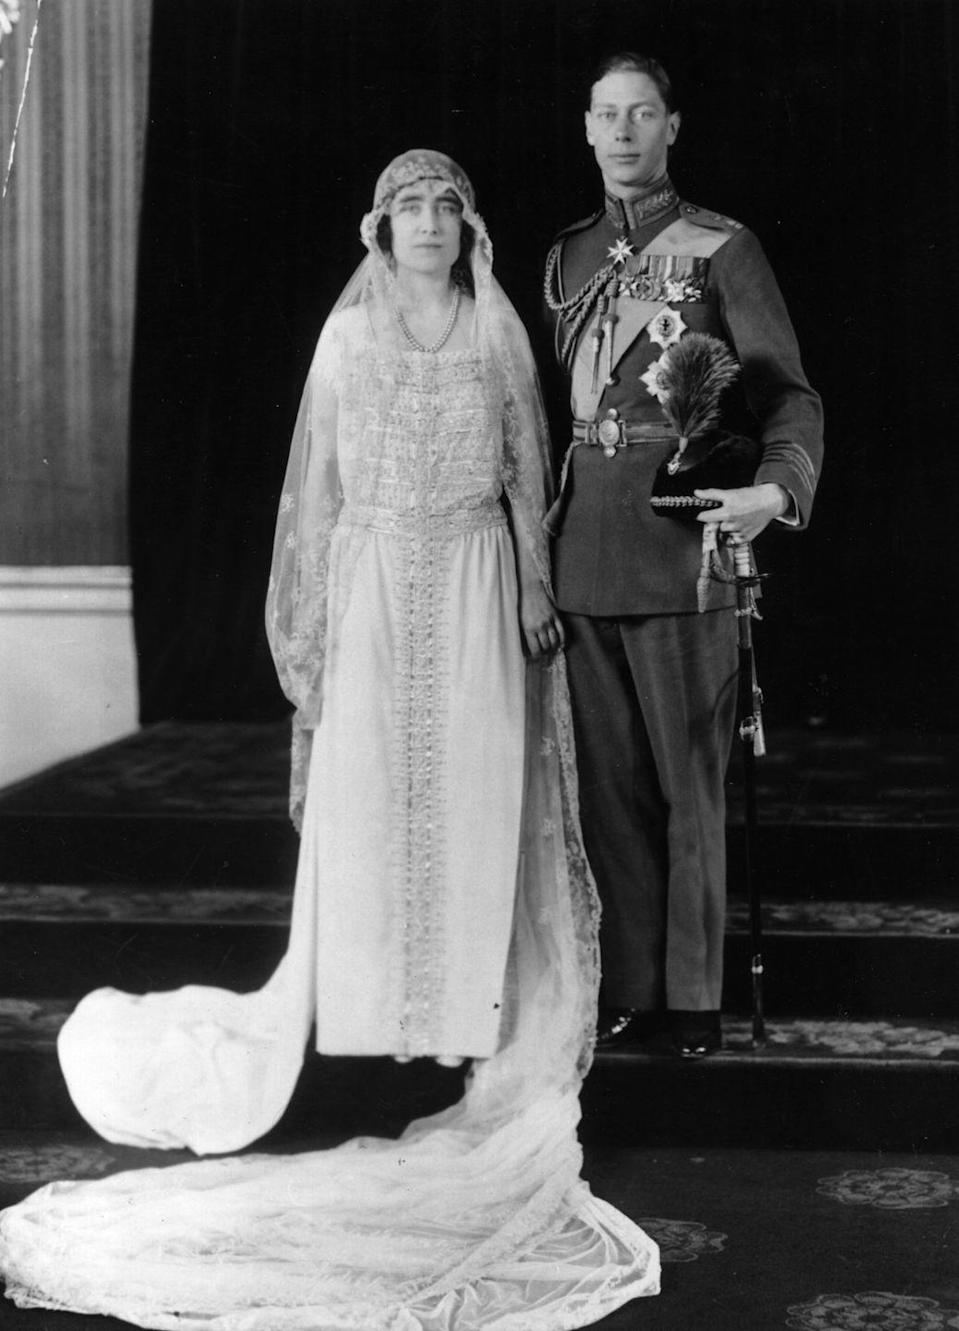 """<p>Lady Elizabeth Bowes-Lyon was proposed to by the Duke of York, later King George VI, in 1923 and they <a href=""""https://www.royal.uk/life-and-work-queen-elizabeth-queen-mother"""" rel=""""nofollow noopener"""" target=""""_blank"""" data-ylk=""""slk:married shortly after"""" class=""""link rapid-noclick-resp"""">married shortly after</a> at Westminster Abbey. </p>"""